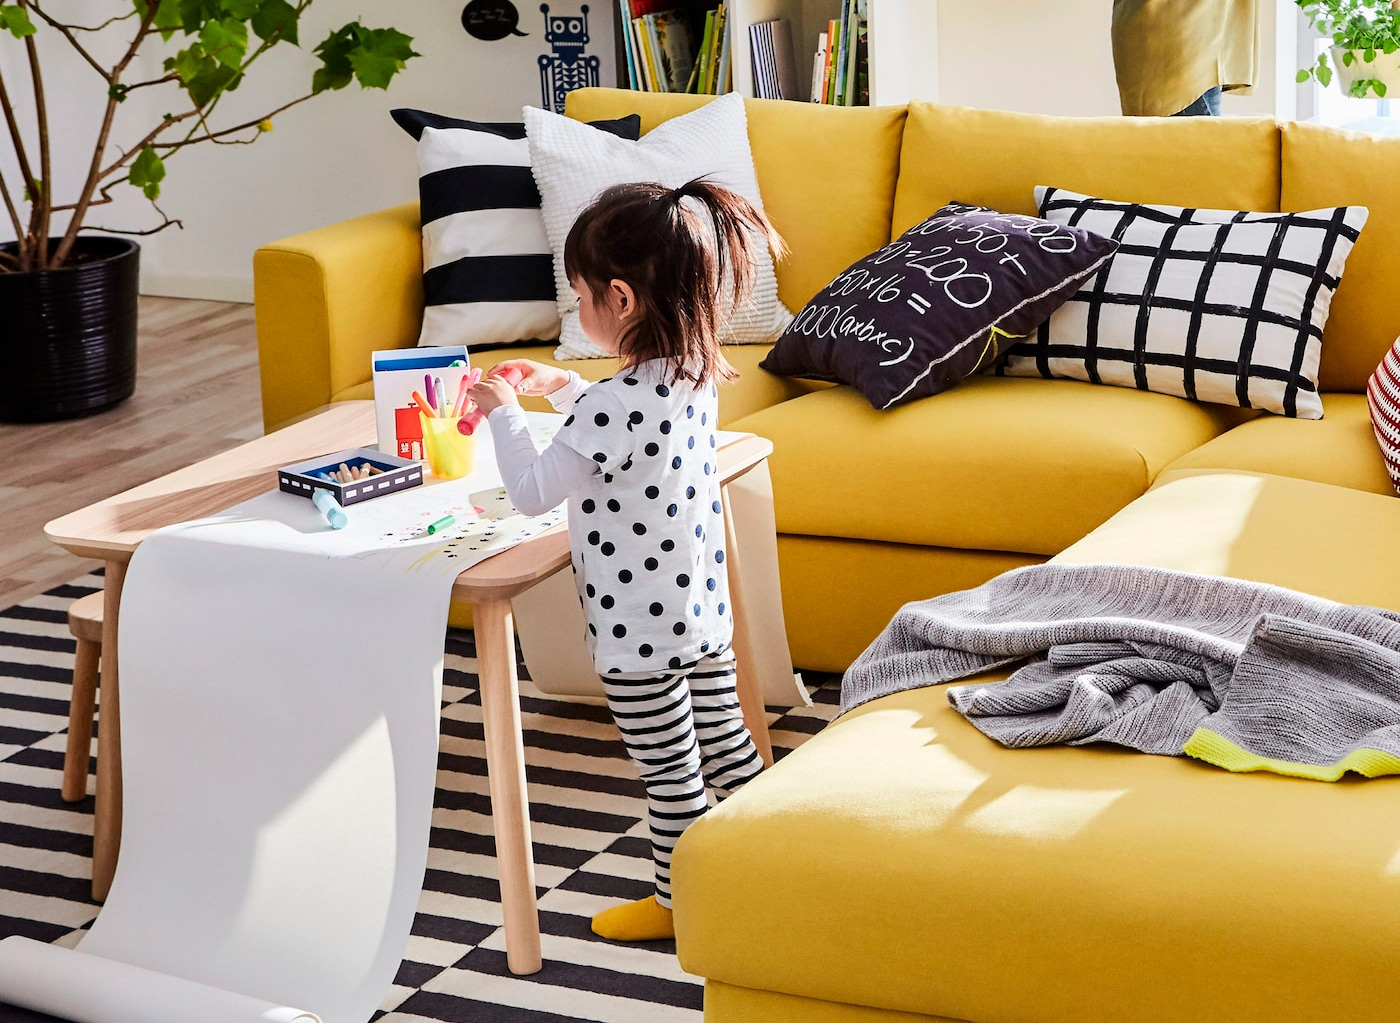 A girl drawing on a long roll of paper on top of a coffee table and next to a yellow IKEA VIMLE three-seat sofa.